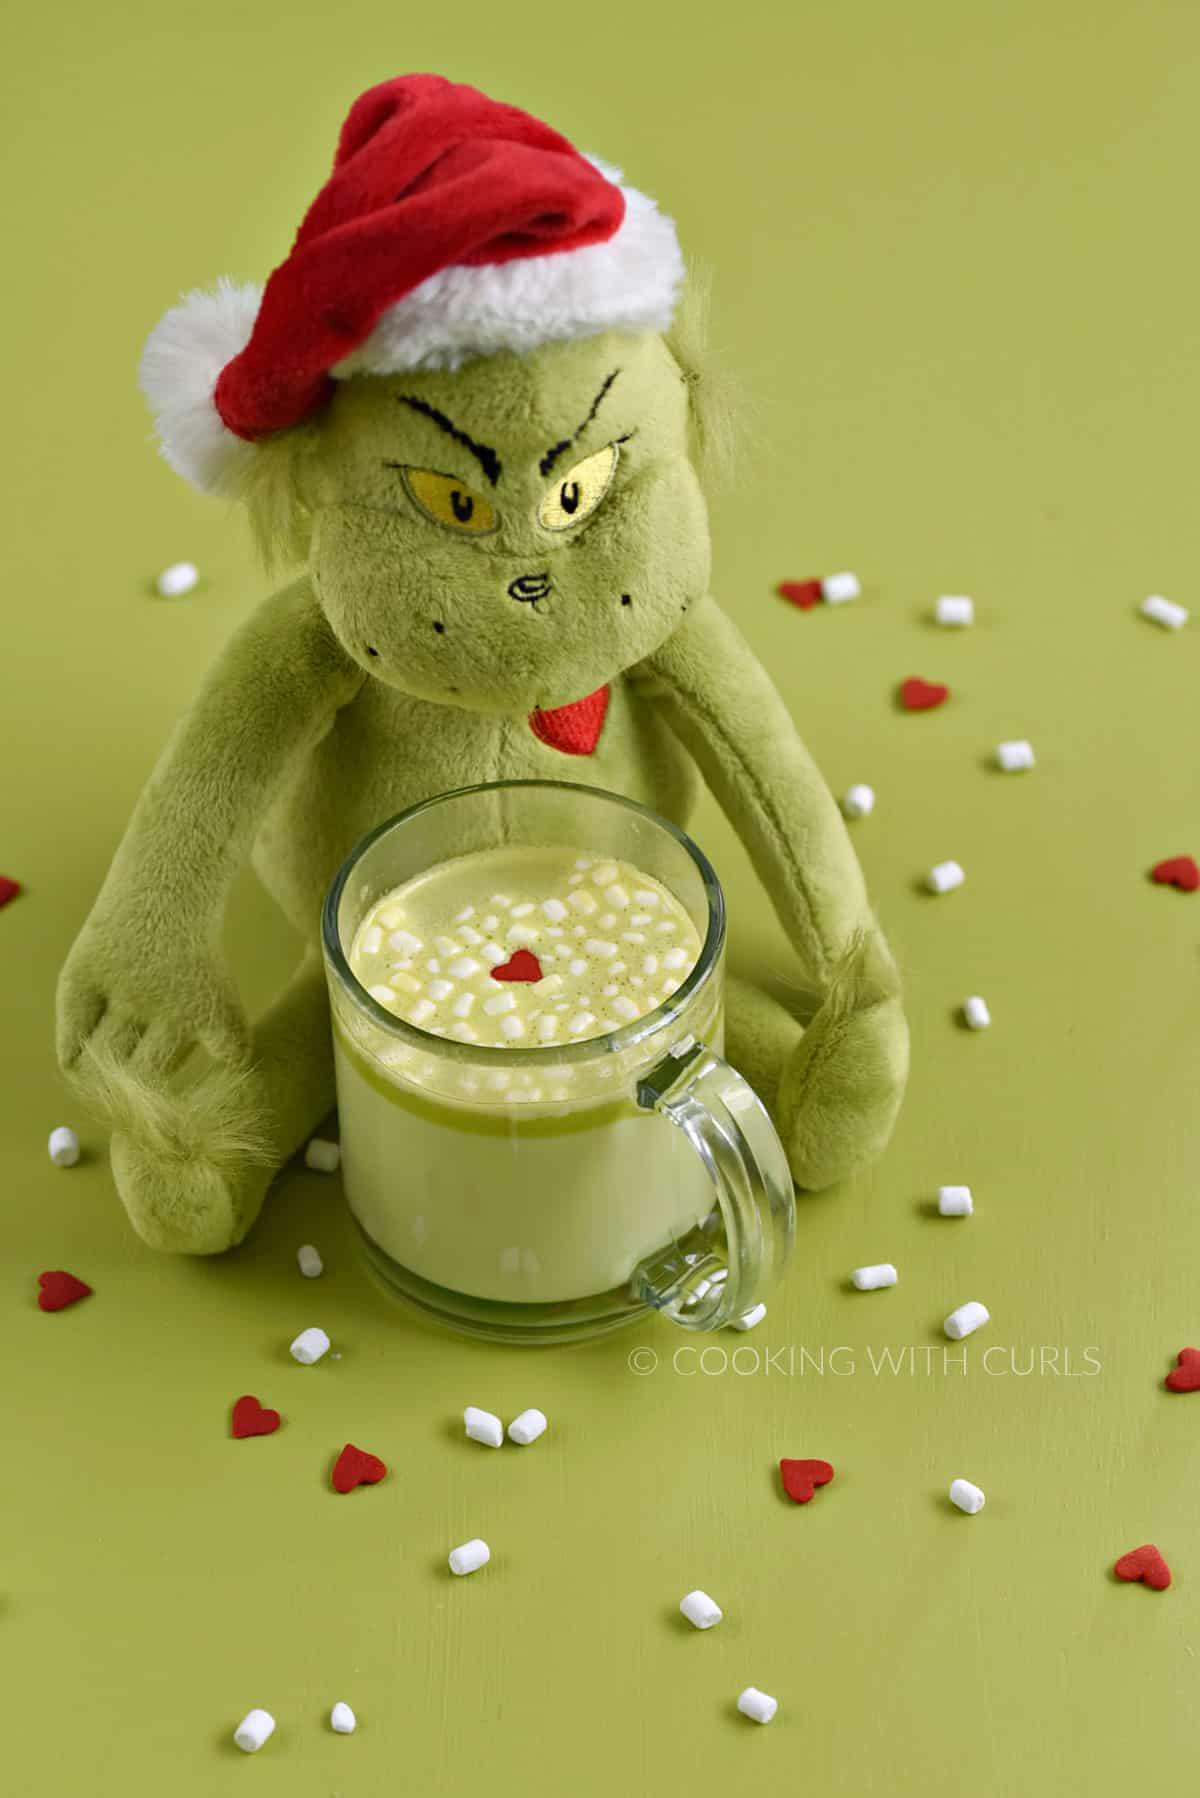 A stuffed Grinch doll sitting behind a mug of green hot chocolate on a green background with scattered red hearts and mini marshmallows.